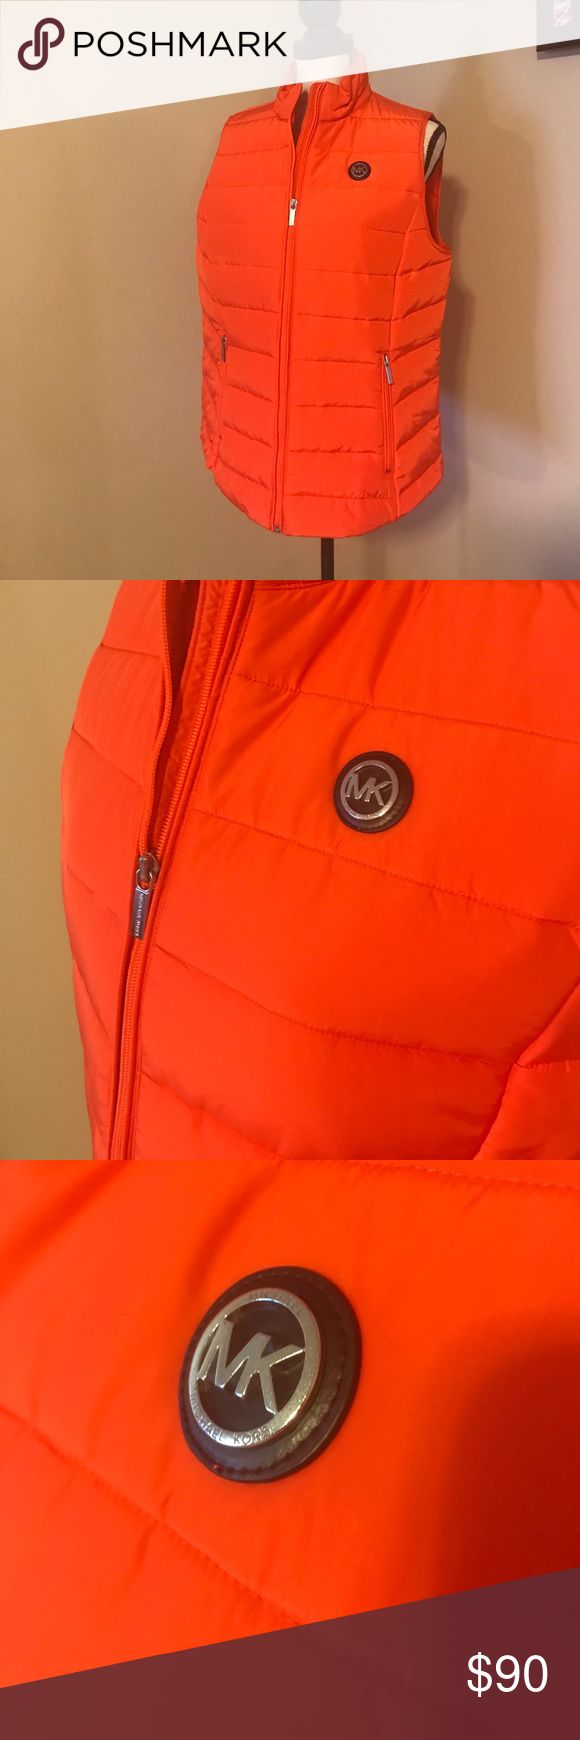 NWT ORANGE MICHAEL KORS PUFFER VEST SIZE L Length is 25 inches. Chest is 21 inches across. MICHAEL Michael Kors Jackets & Coats Vests